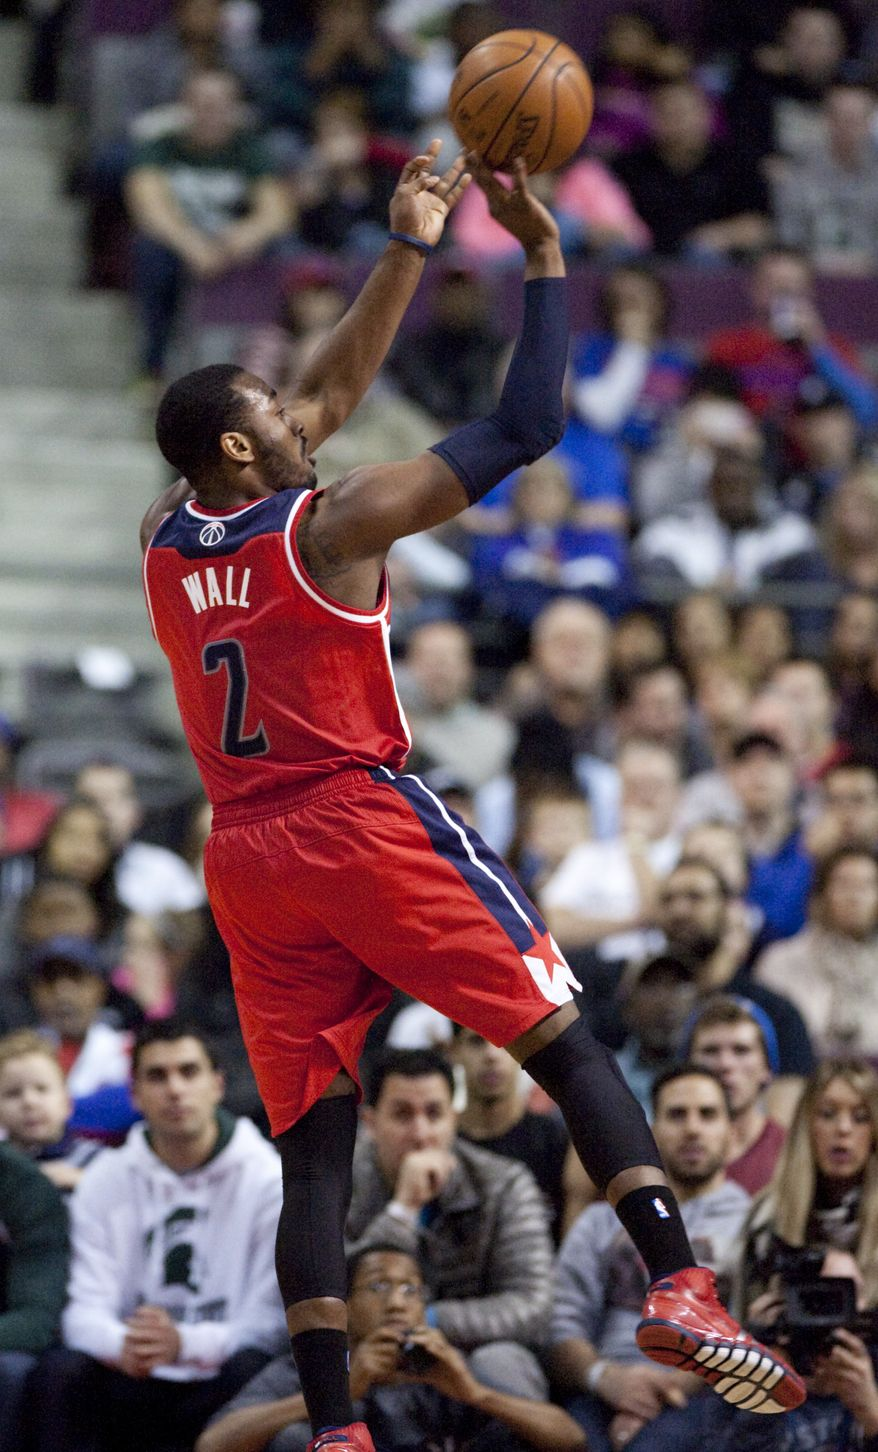 Washington Wizards guard John Wall (2) takes a shot against the Detroit Pistons during the second half of an NBA basketball game, Monday, Dec. 30, 2013, in Auburn Hills, Mich. Wall led the Wizards with 29 points in a 106-99 win. (AP Photo/Duane Burleson)